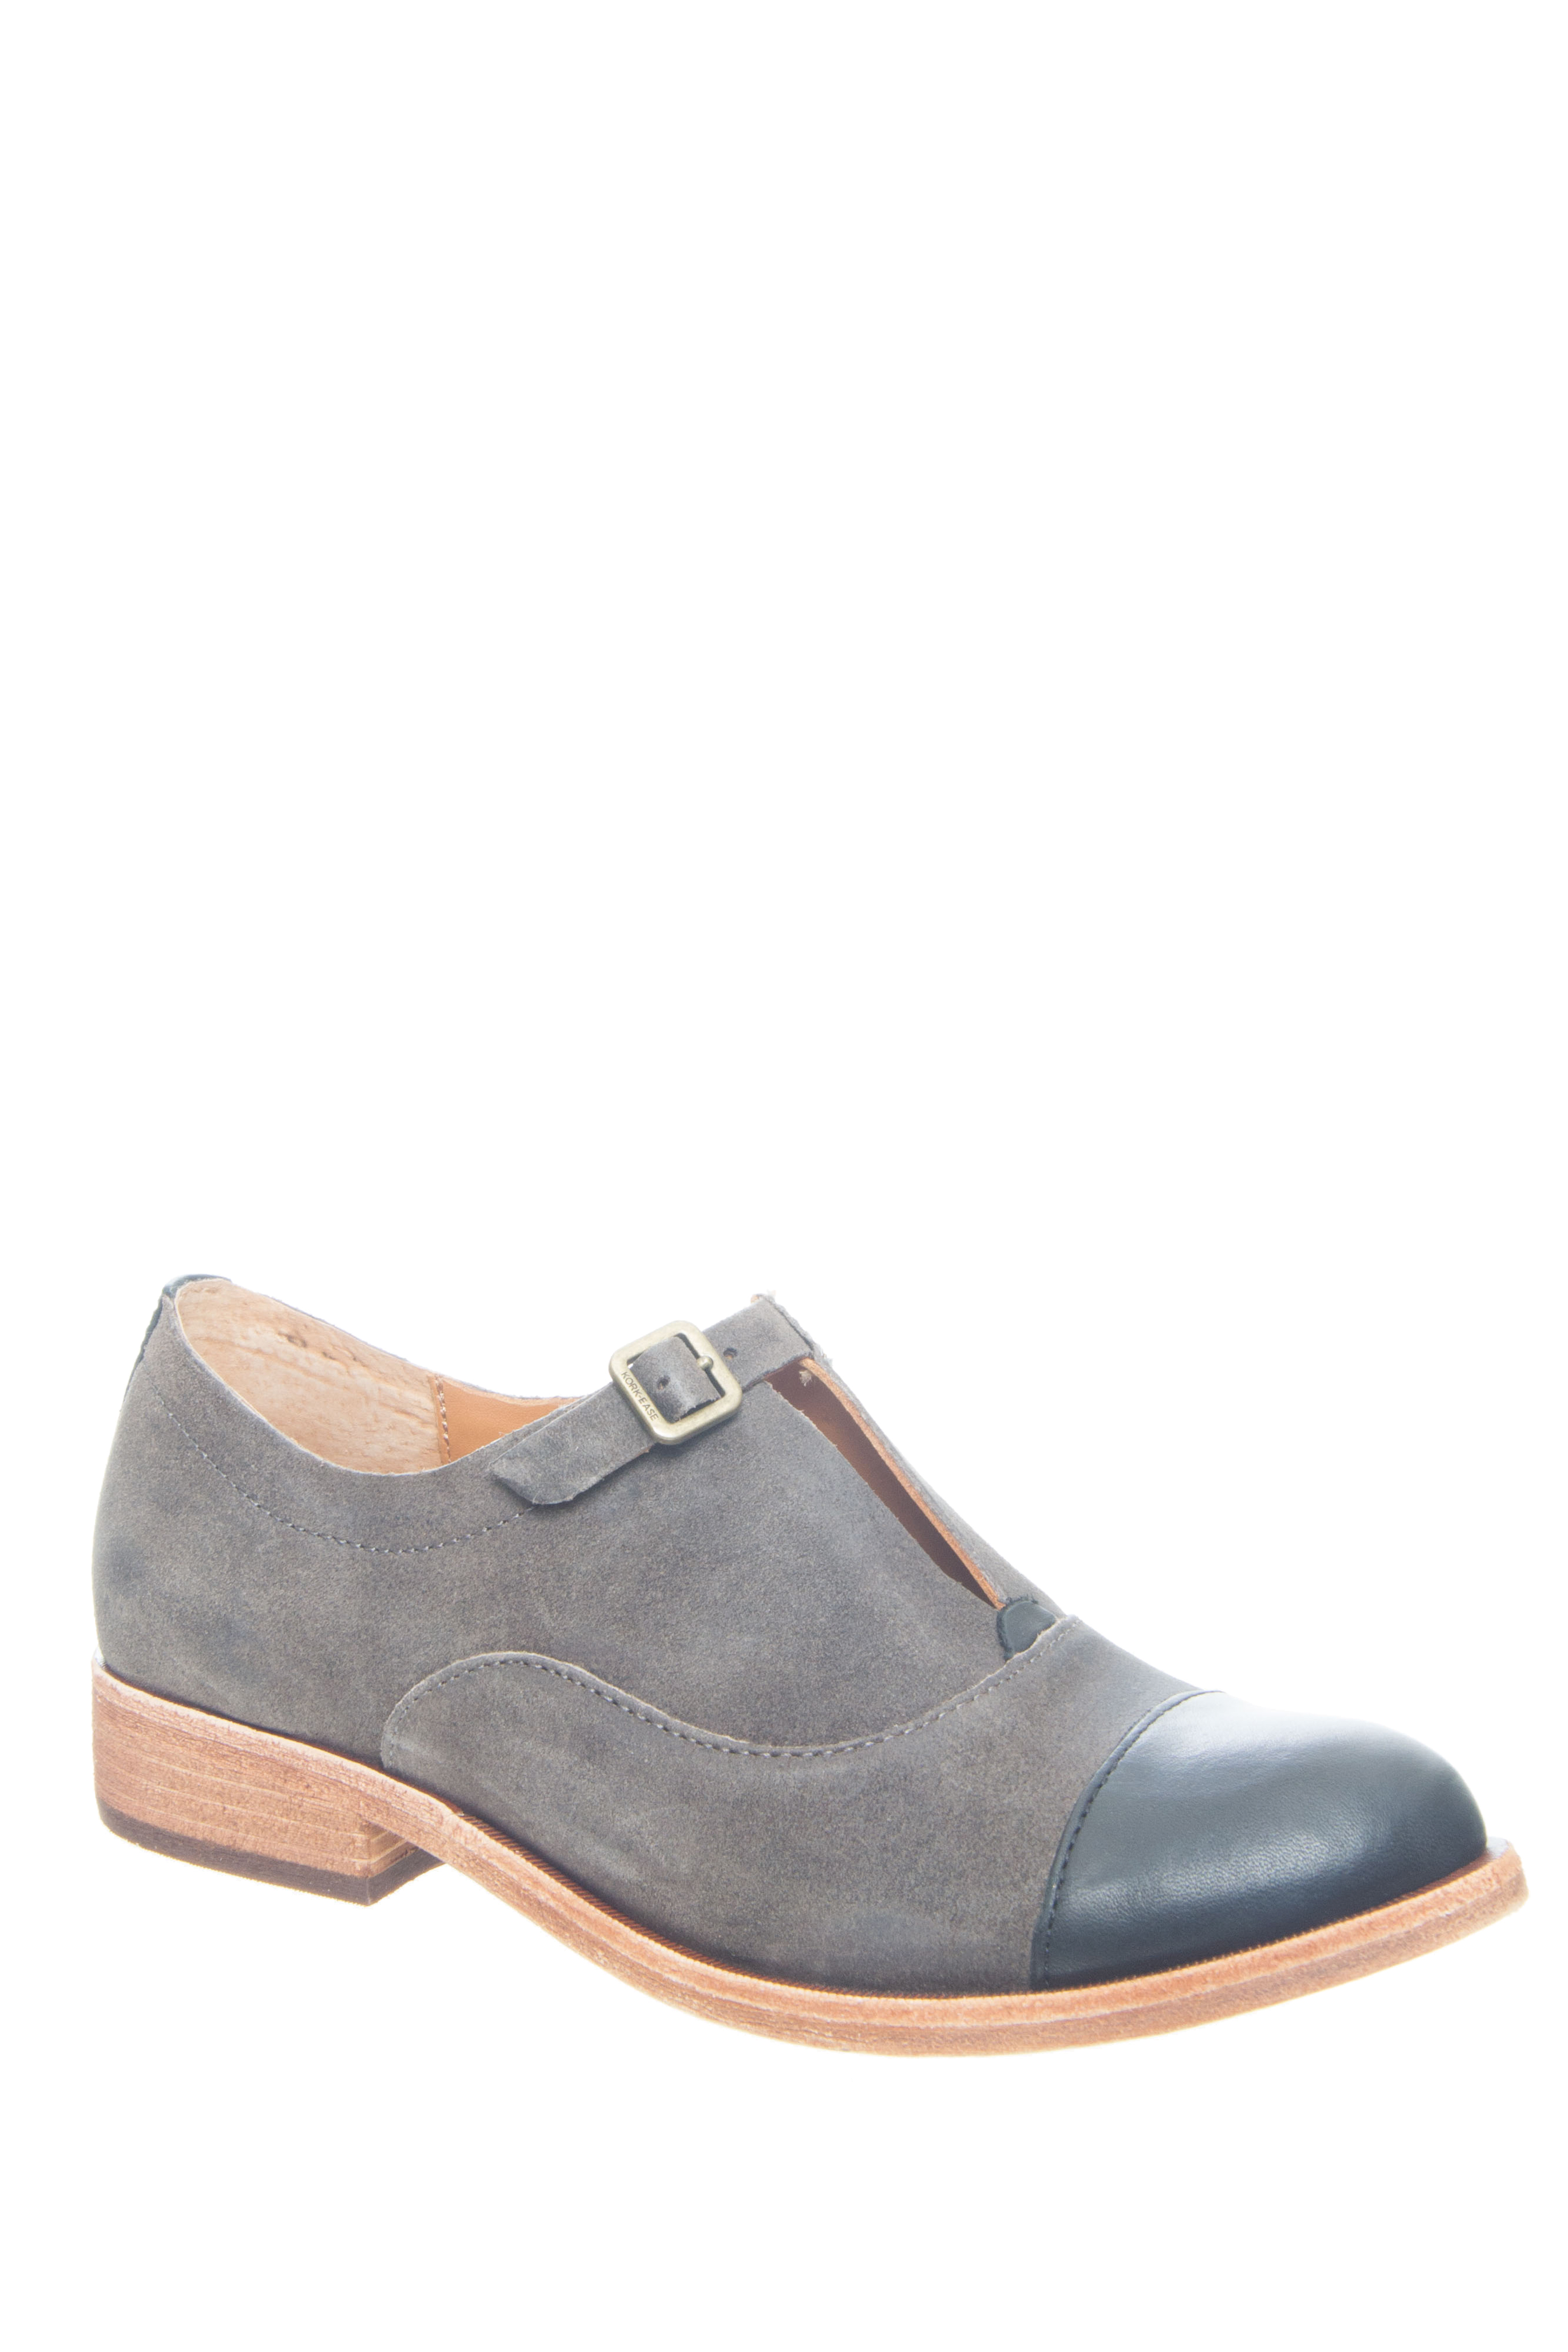 Kork-Ease Niseda Low Heel Oxford - Dark Grey / Taupe / Black Combo